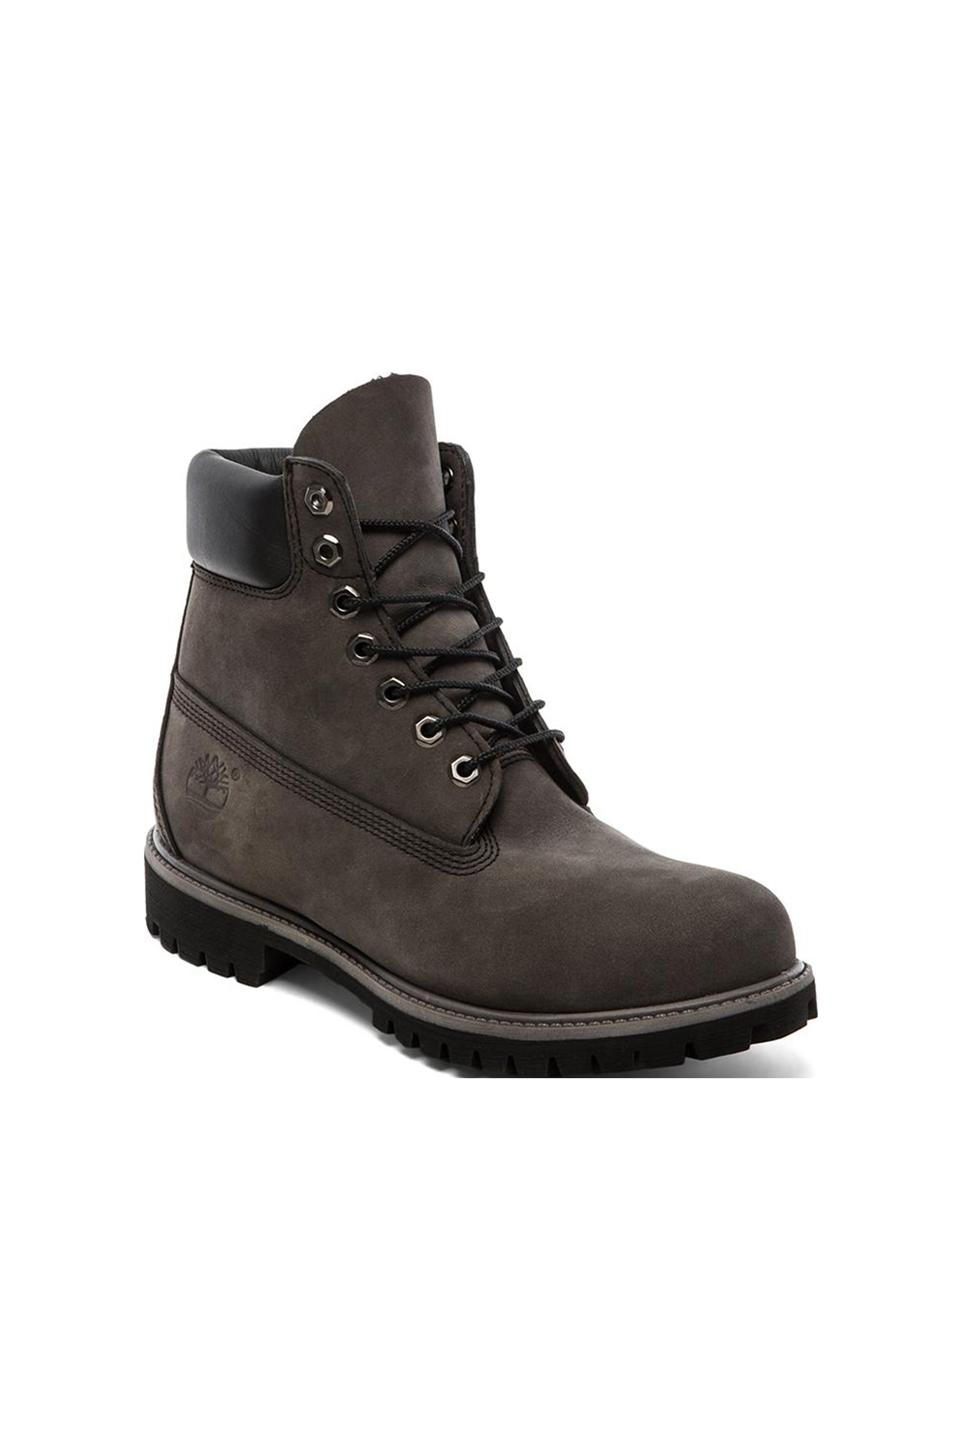 Timberland A17qf Classic Boots In Gray For Men Lyst